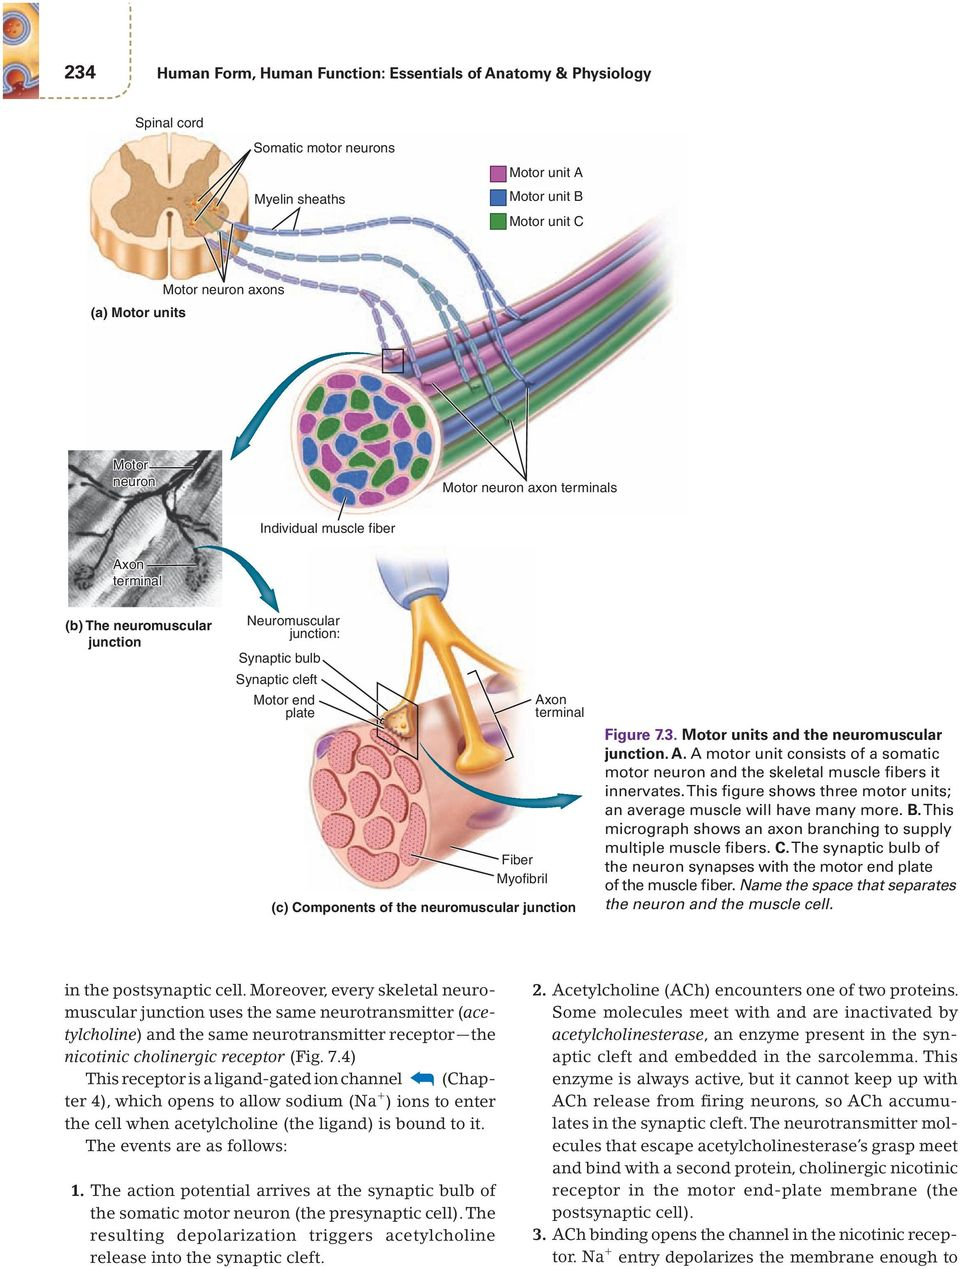 terminal (c) Components of the neuromuscular junction Figure 7.3. Motor units and the